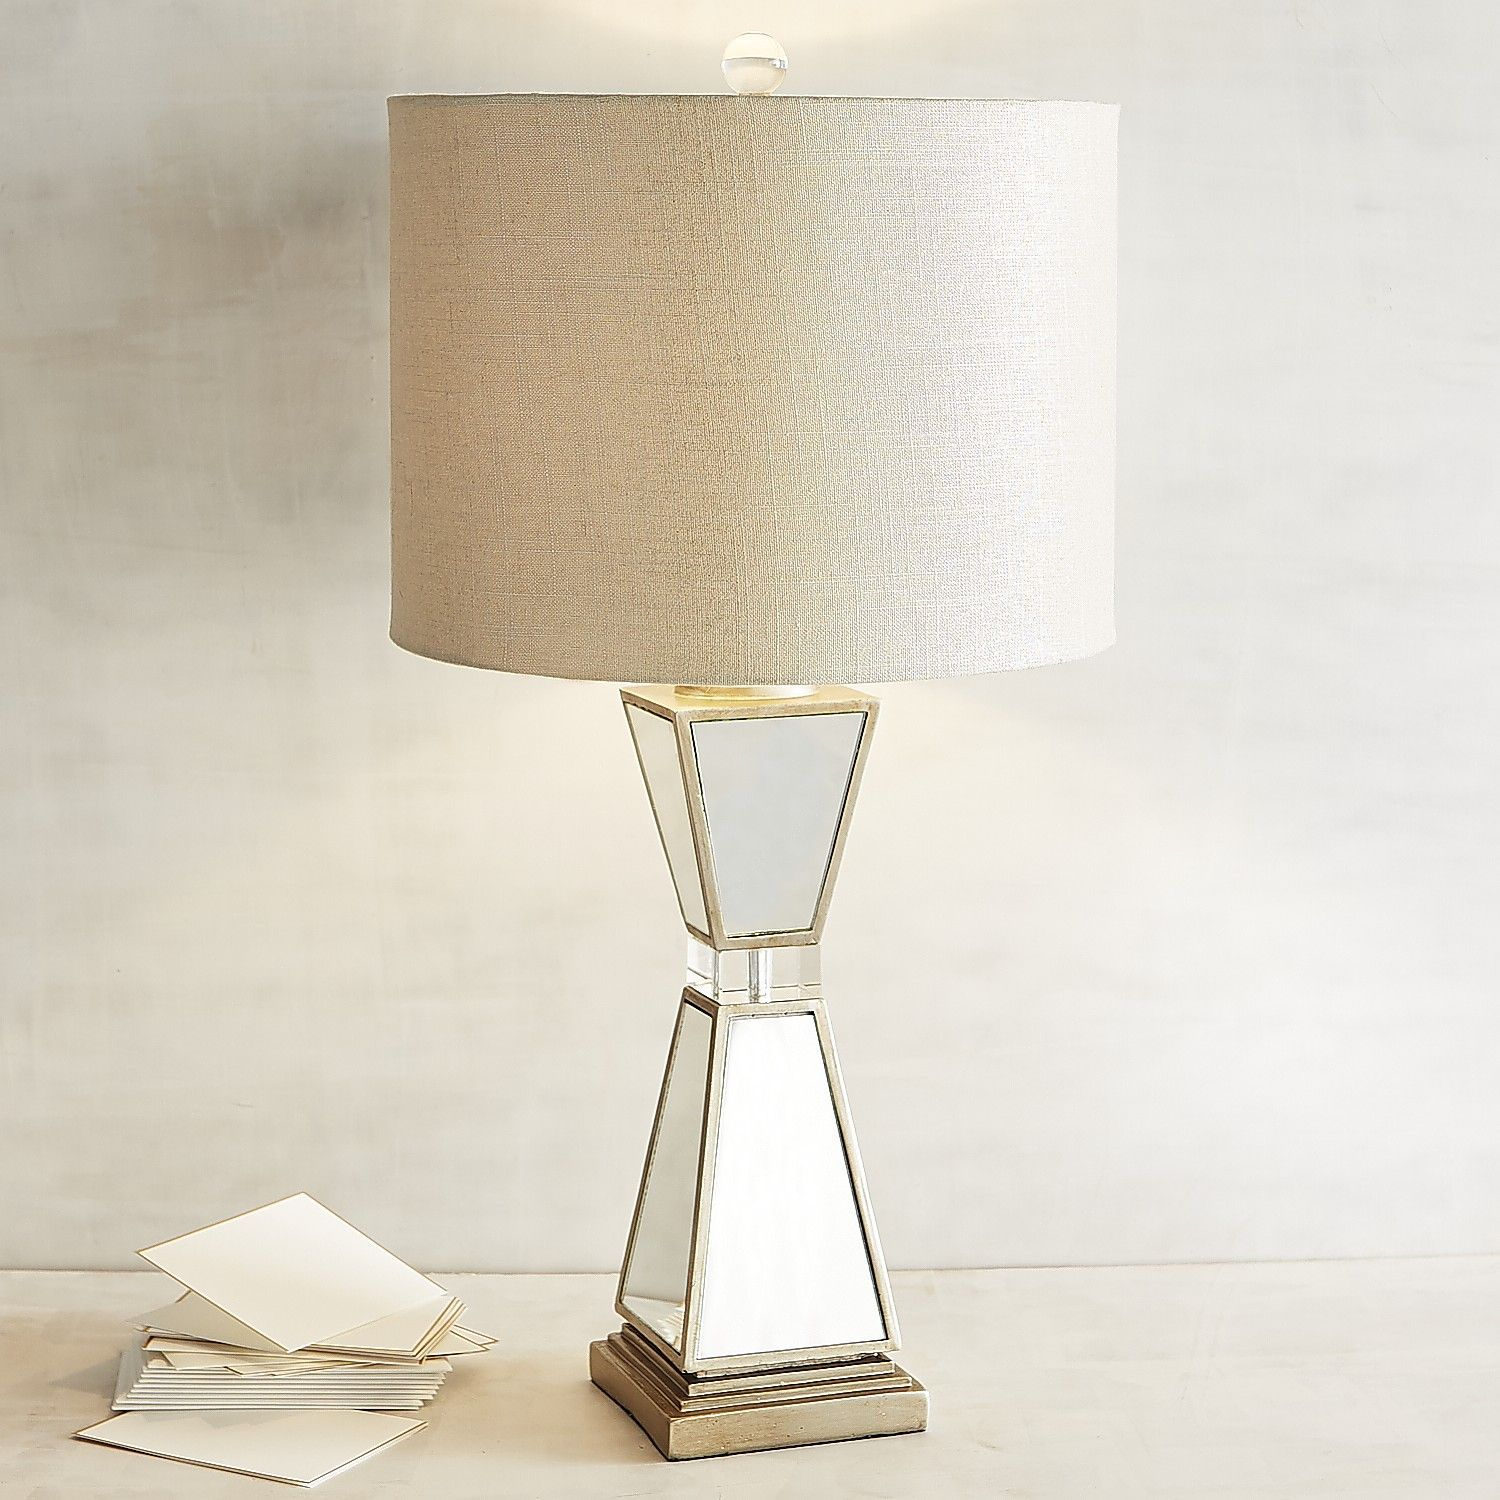 Hayworth mirrored table lamp champagne products pinterest hayworth mirrored table lamp champagne geotapseo Images